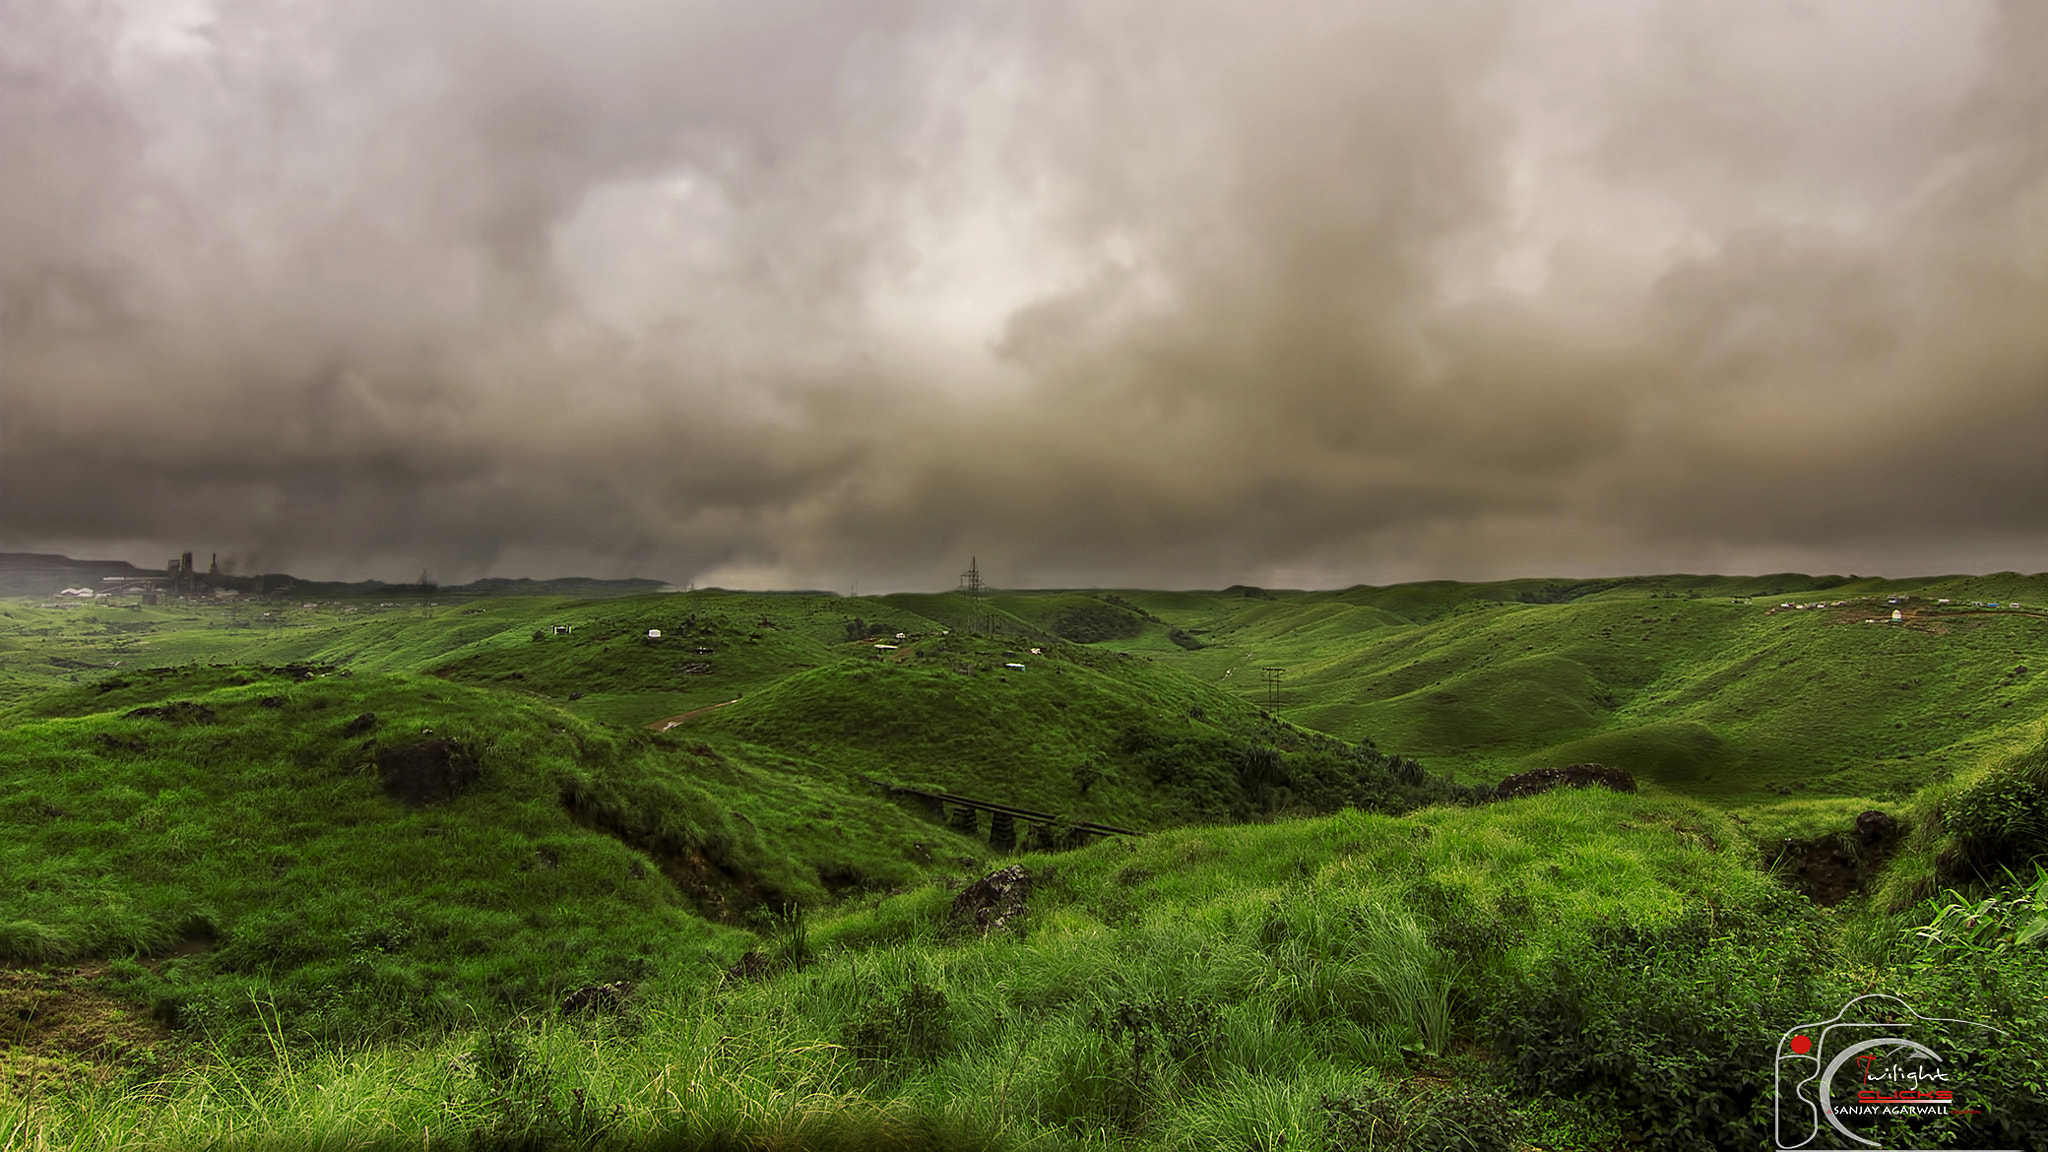 Photograph LIGHT & SHADES OF MEGHALAYA by Sanjay Agarwall on 500px